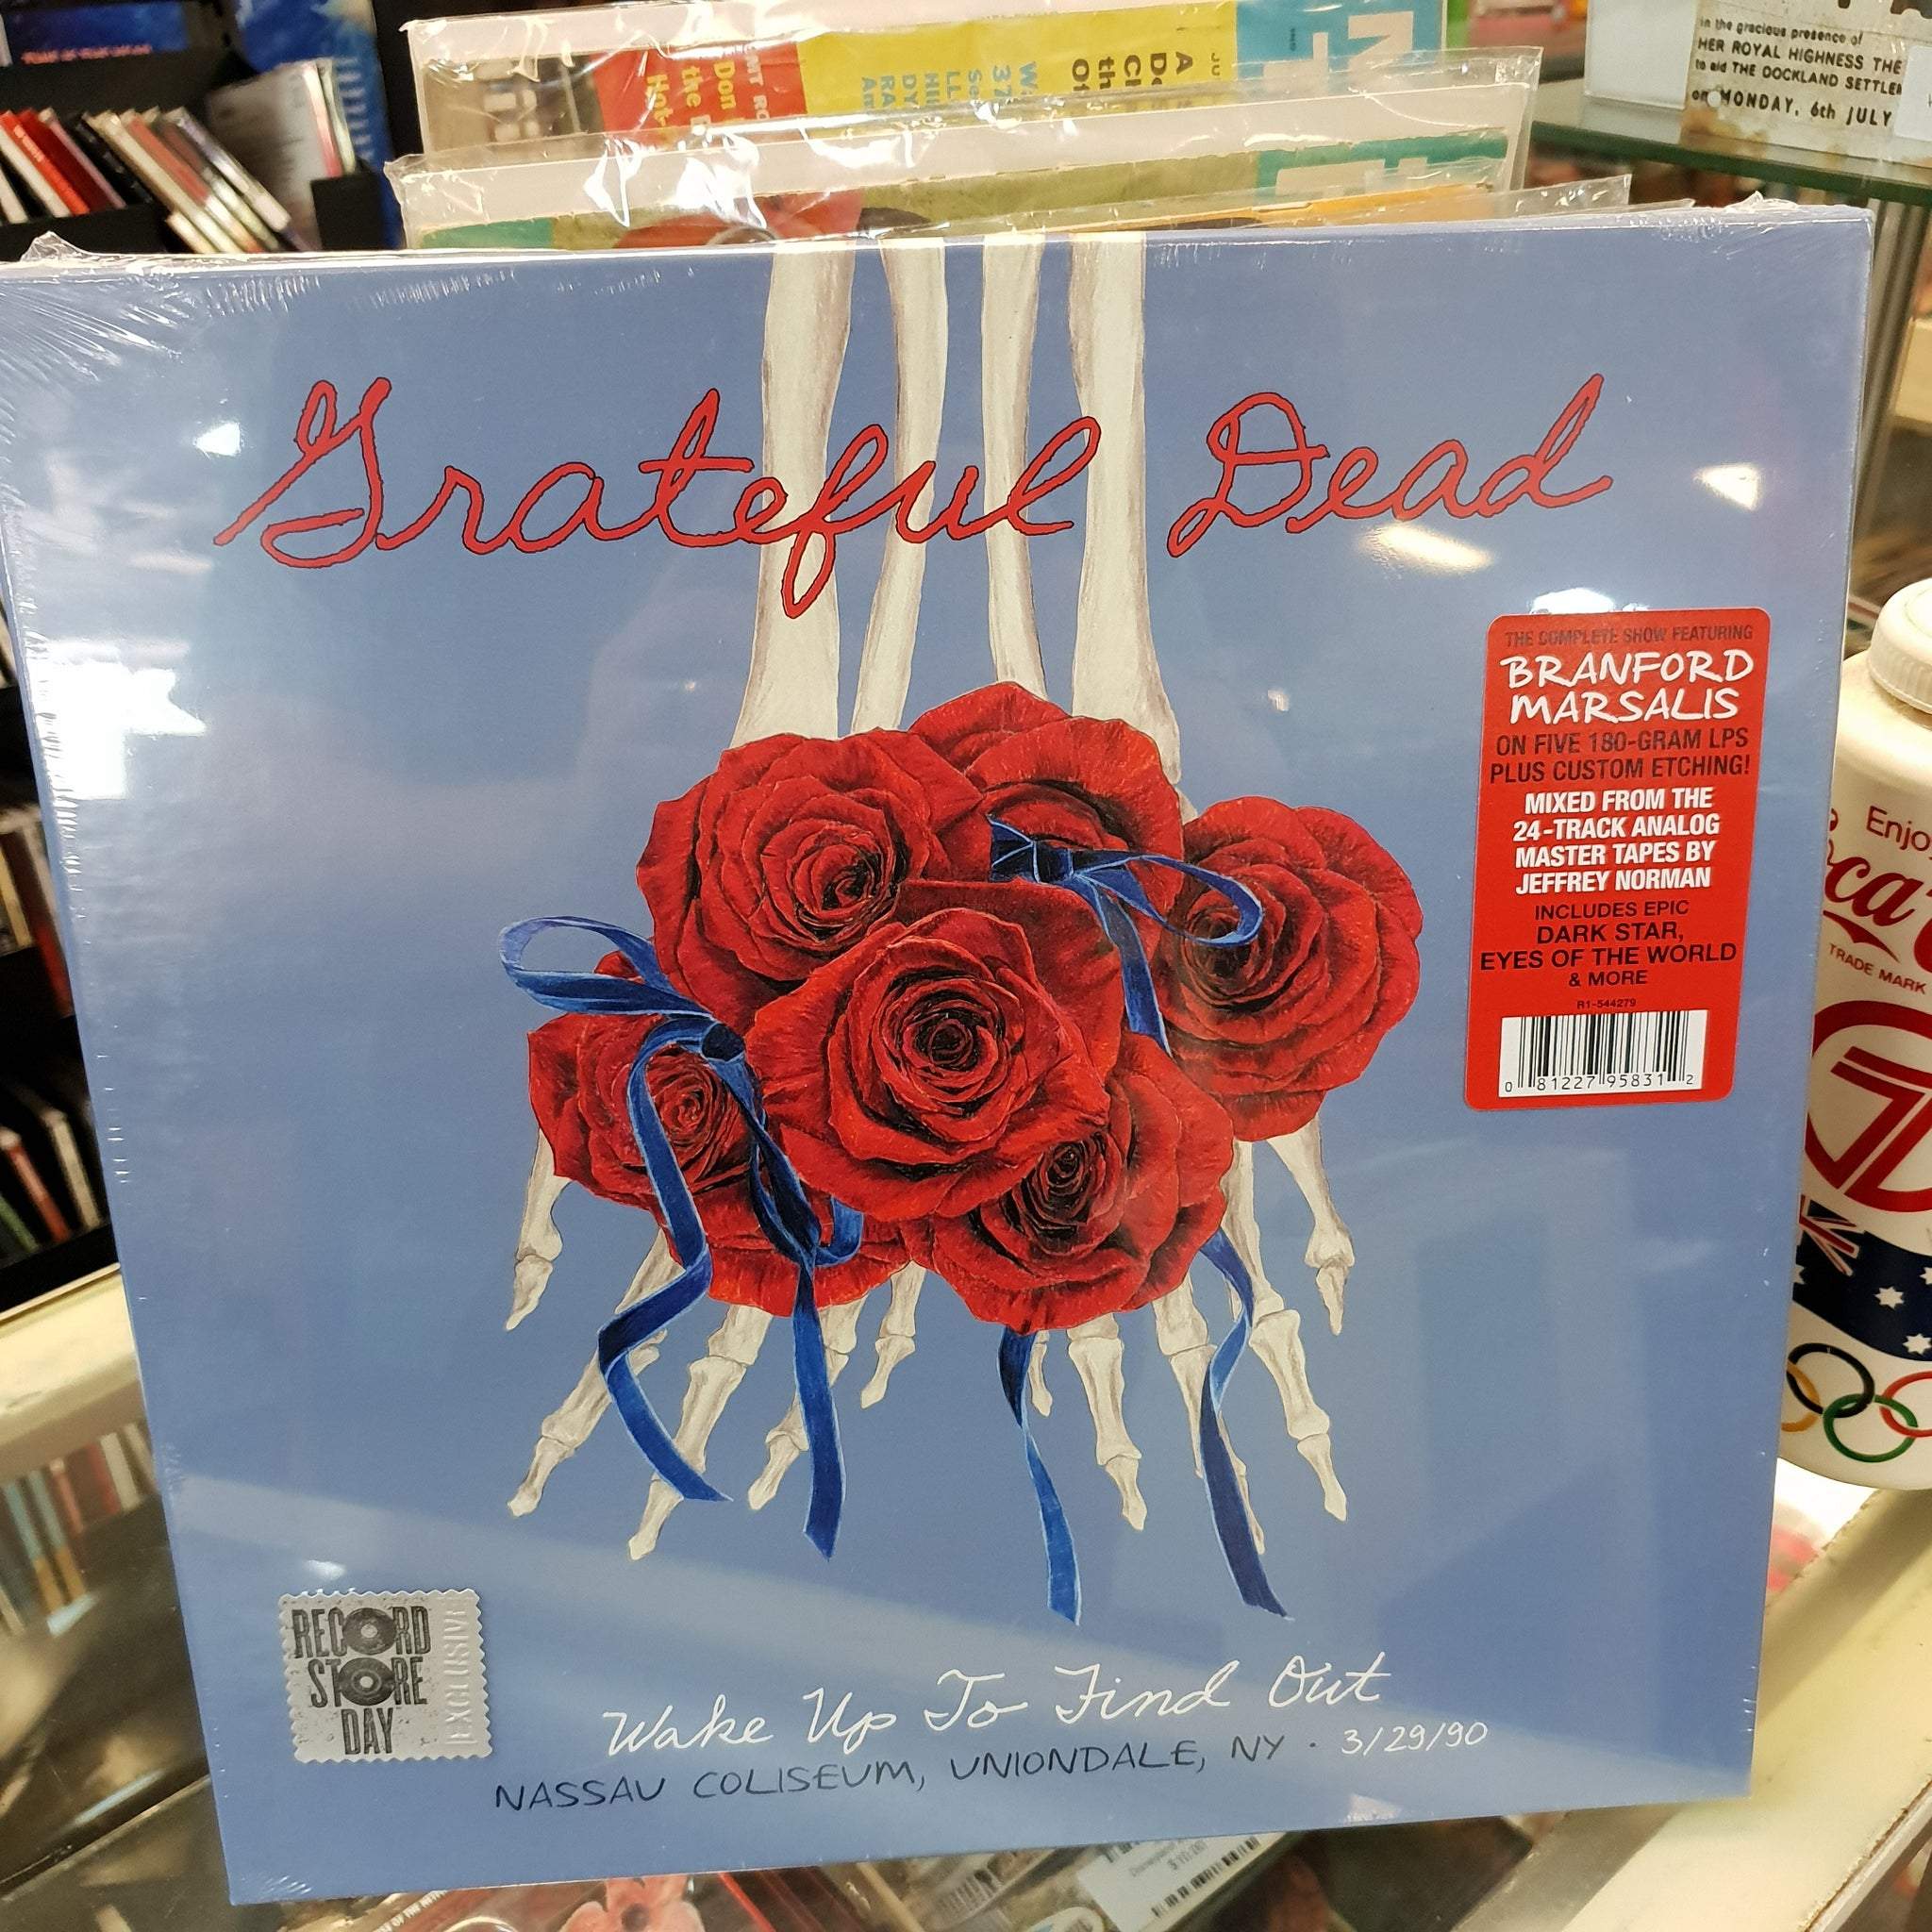 NEW - Grateful Dead, Wakeup to Find Out 5LP Set